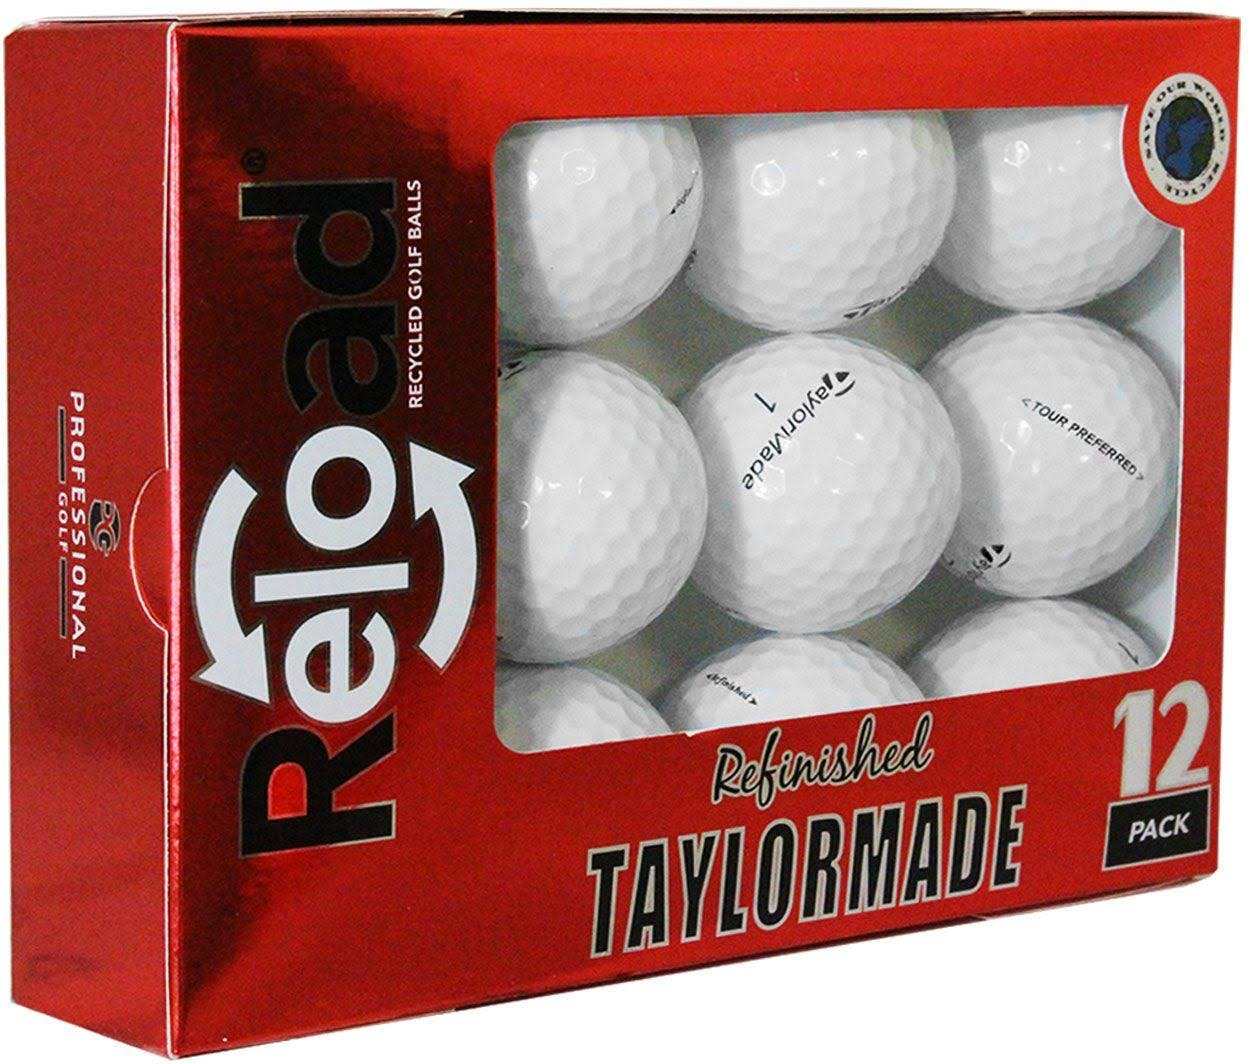 TaylorMade Tour Preferred Refinished Golf Balls